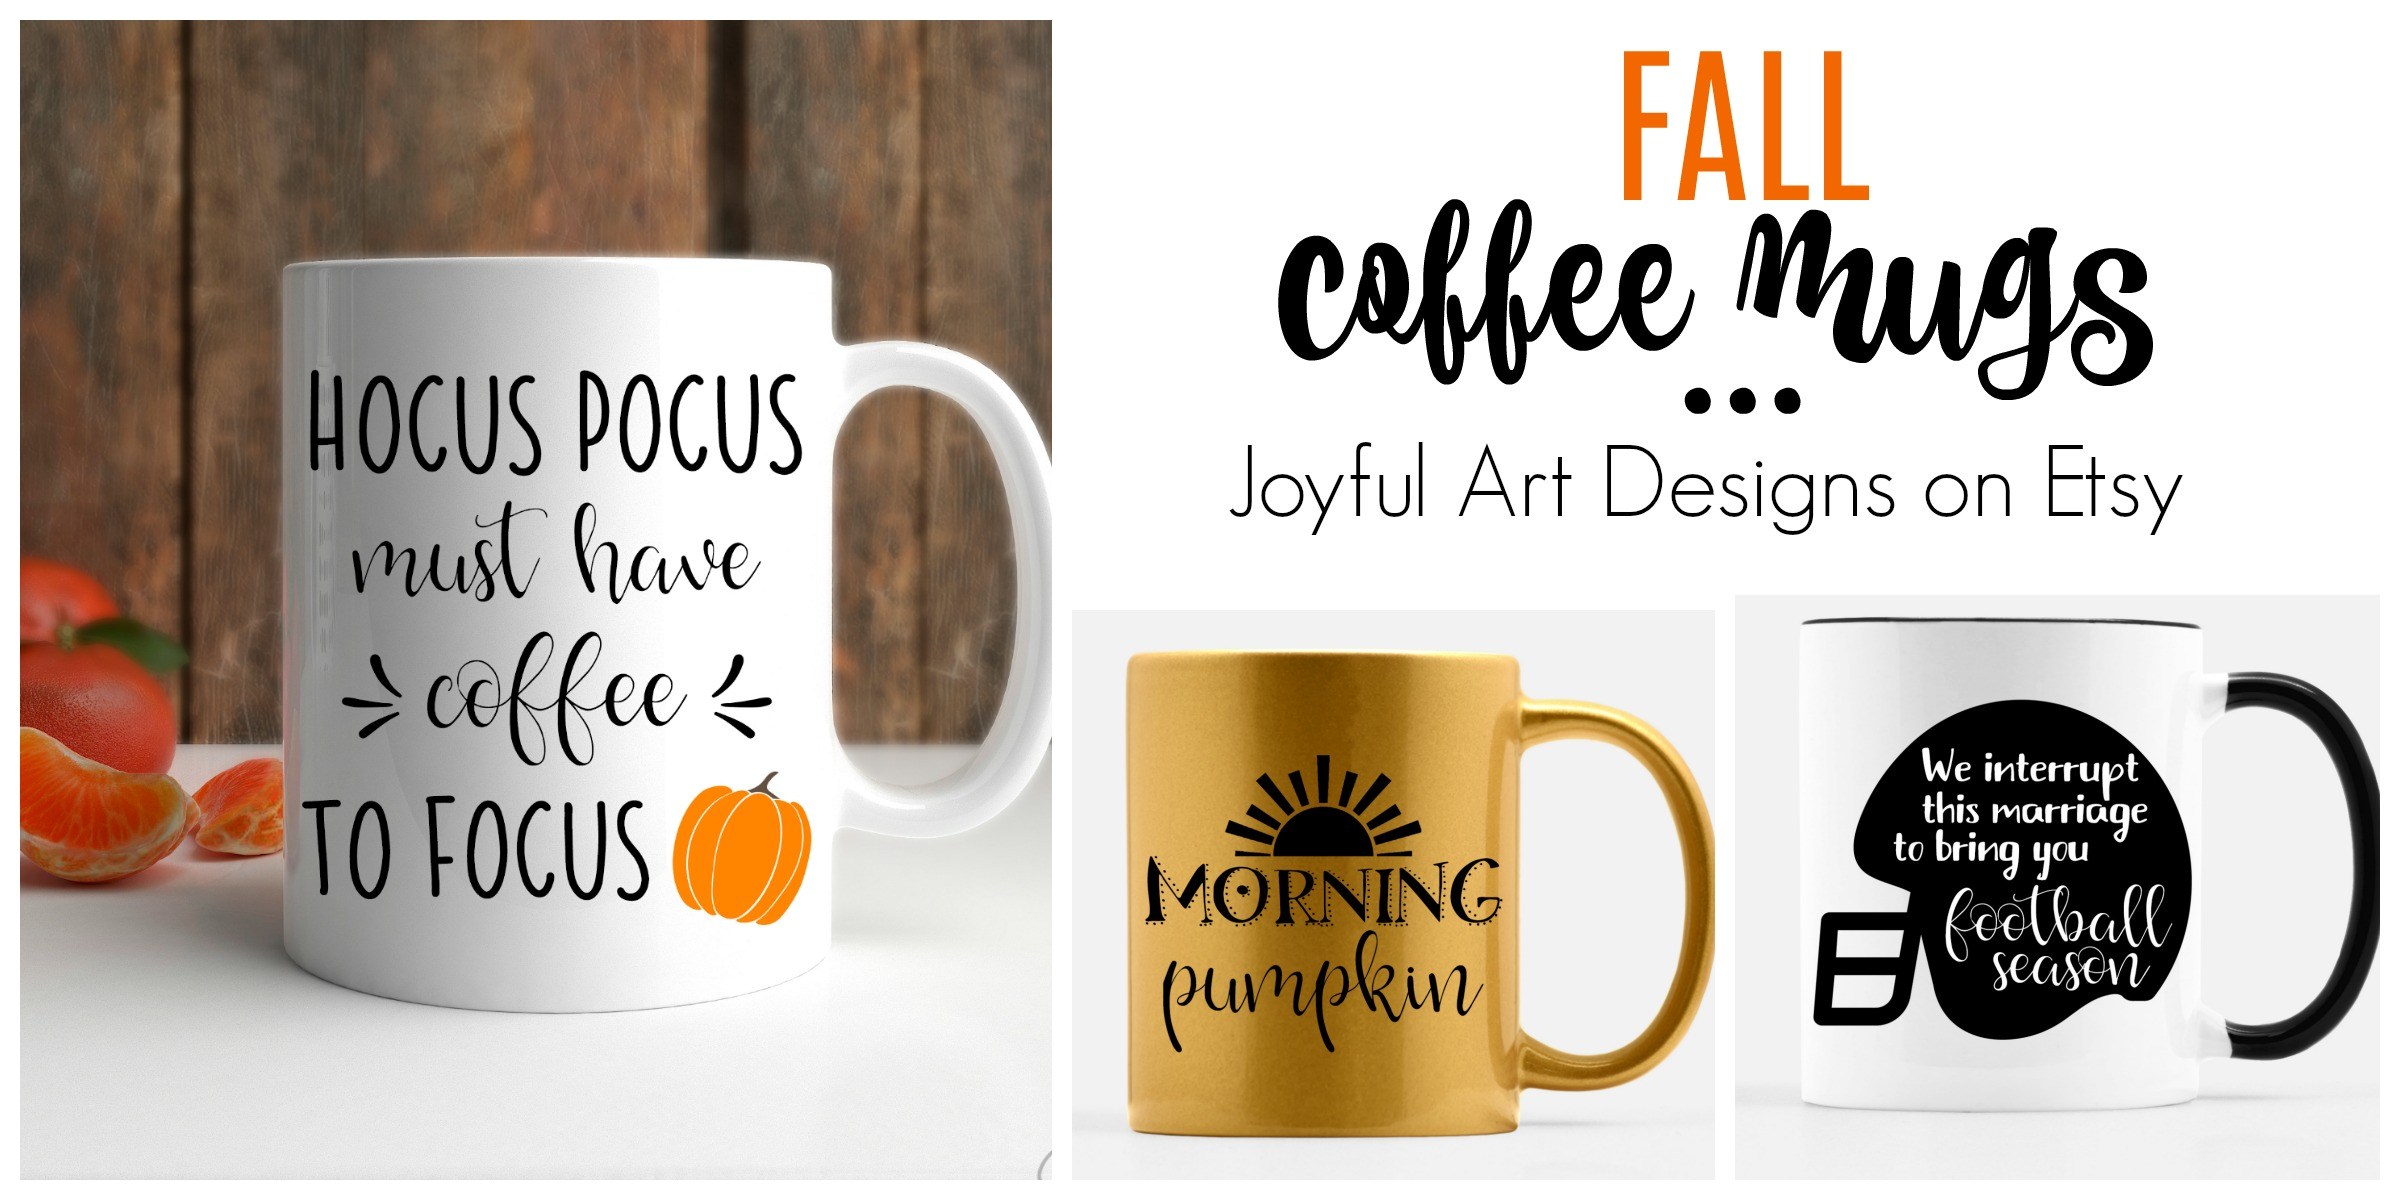 Fall Coffee Mugs